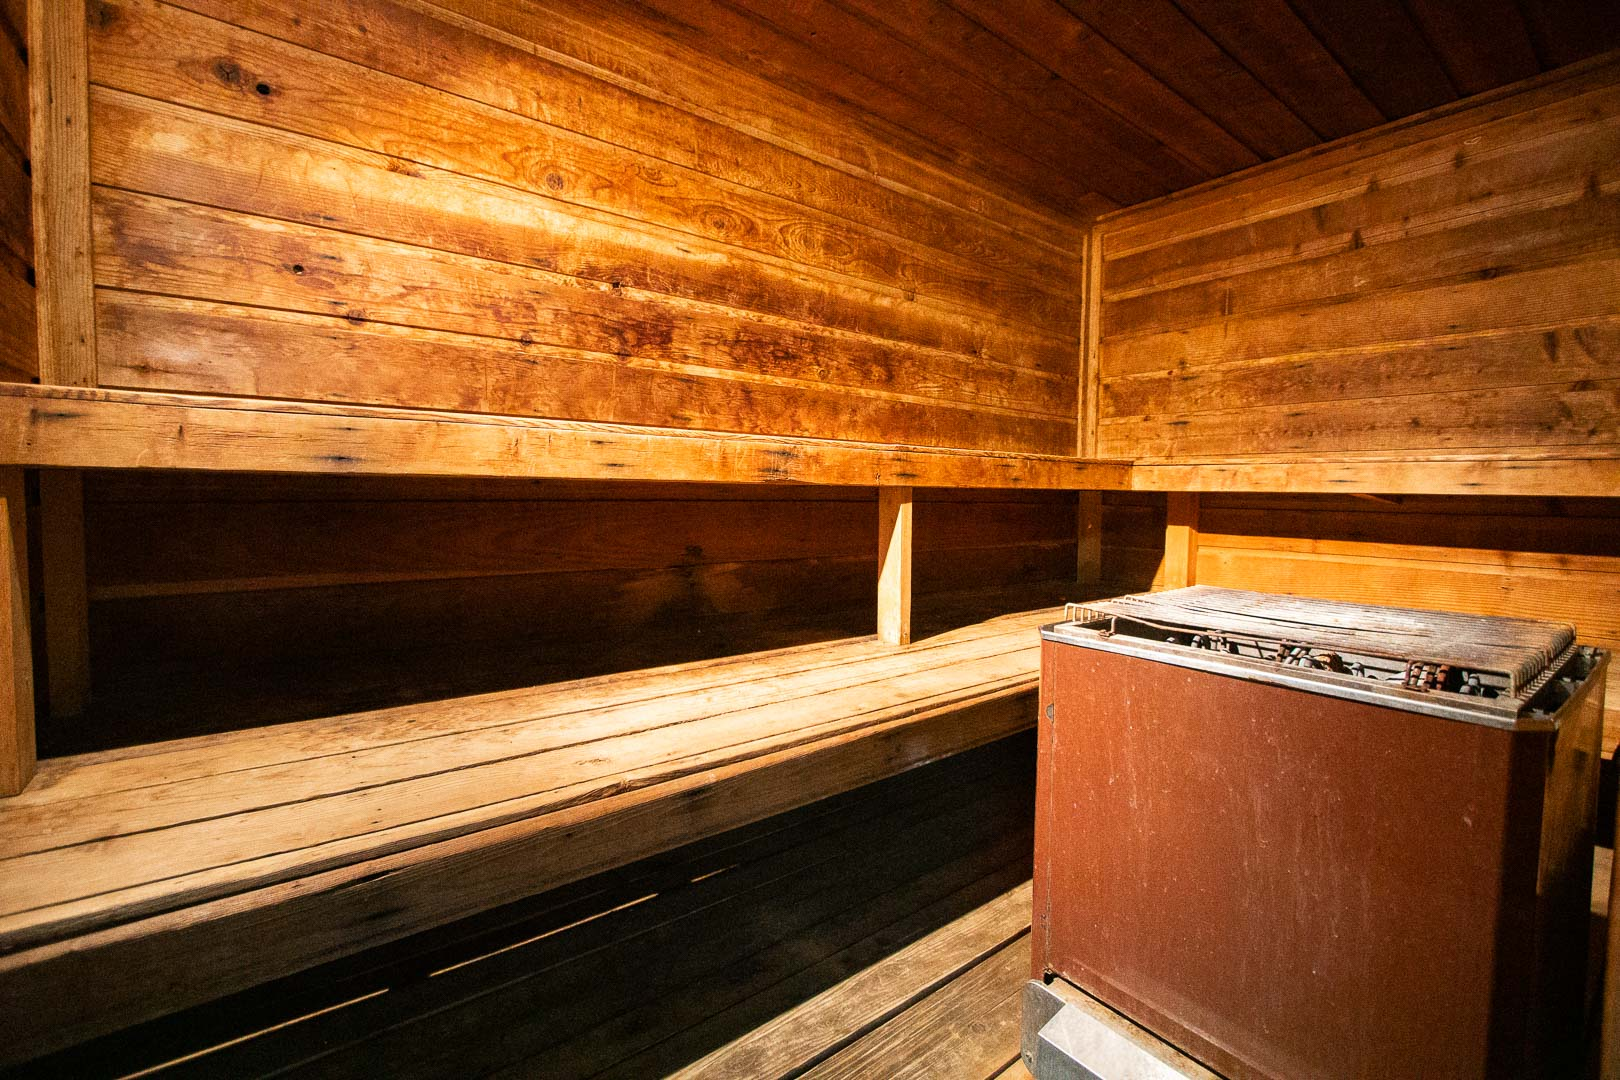 A relaxing sauna room available at VRI's Barrier Island Station in North Carolina.